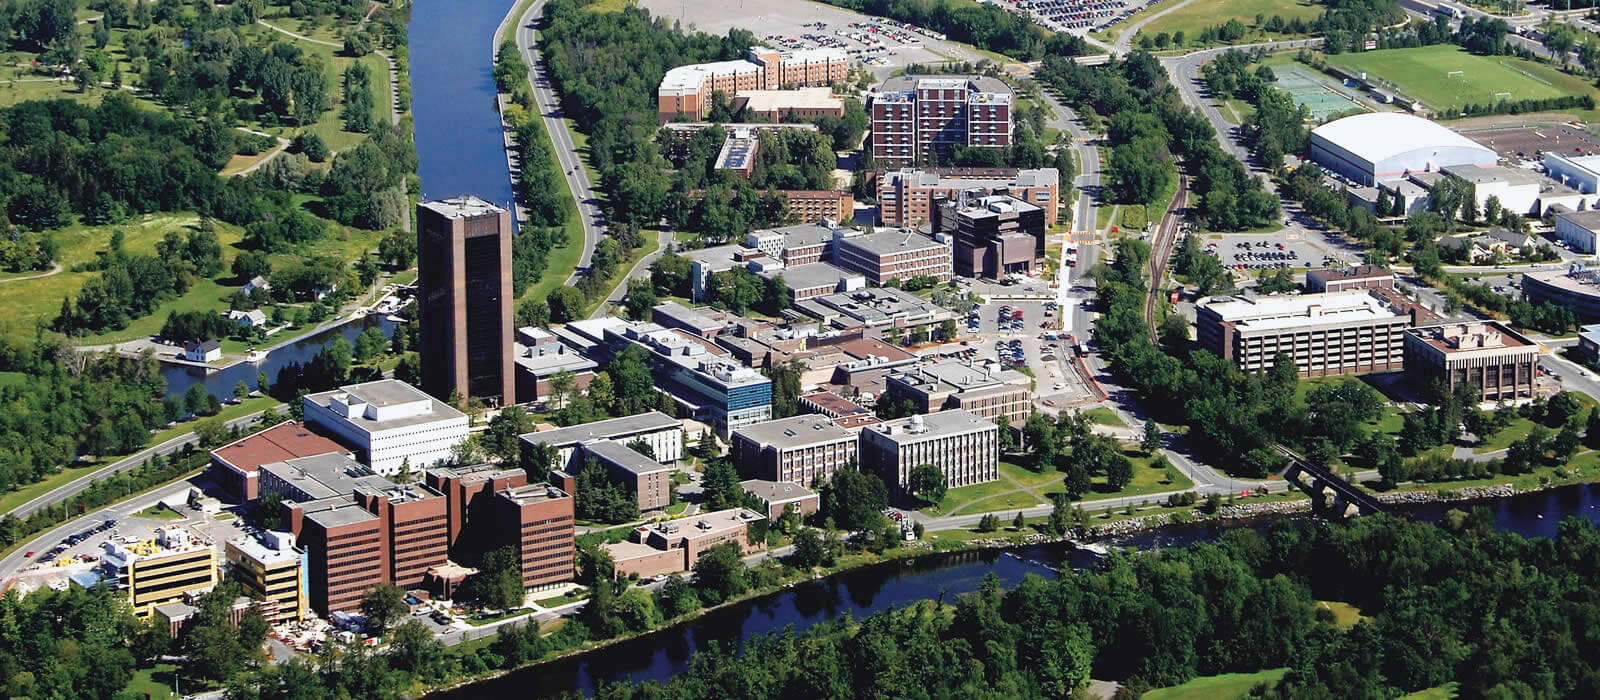 Canada's capital is developing future tech leaders with the Technology Innovation Management program at Carleton University